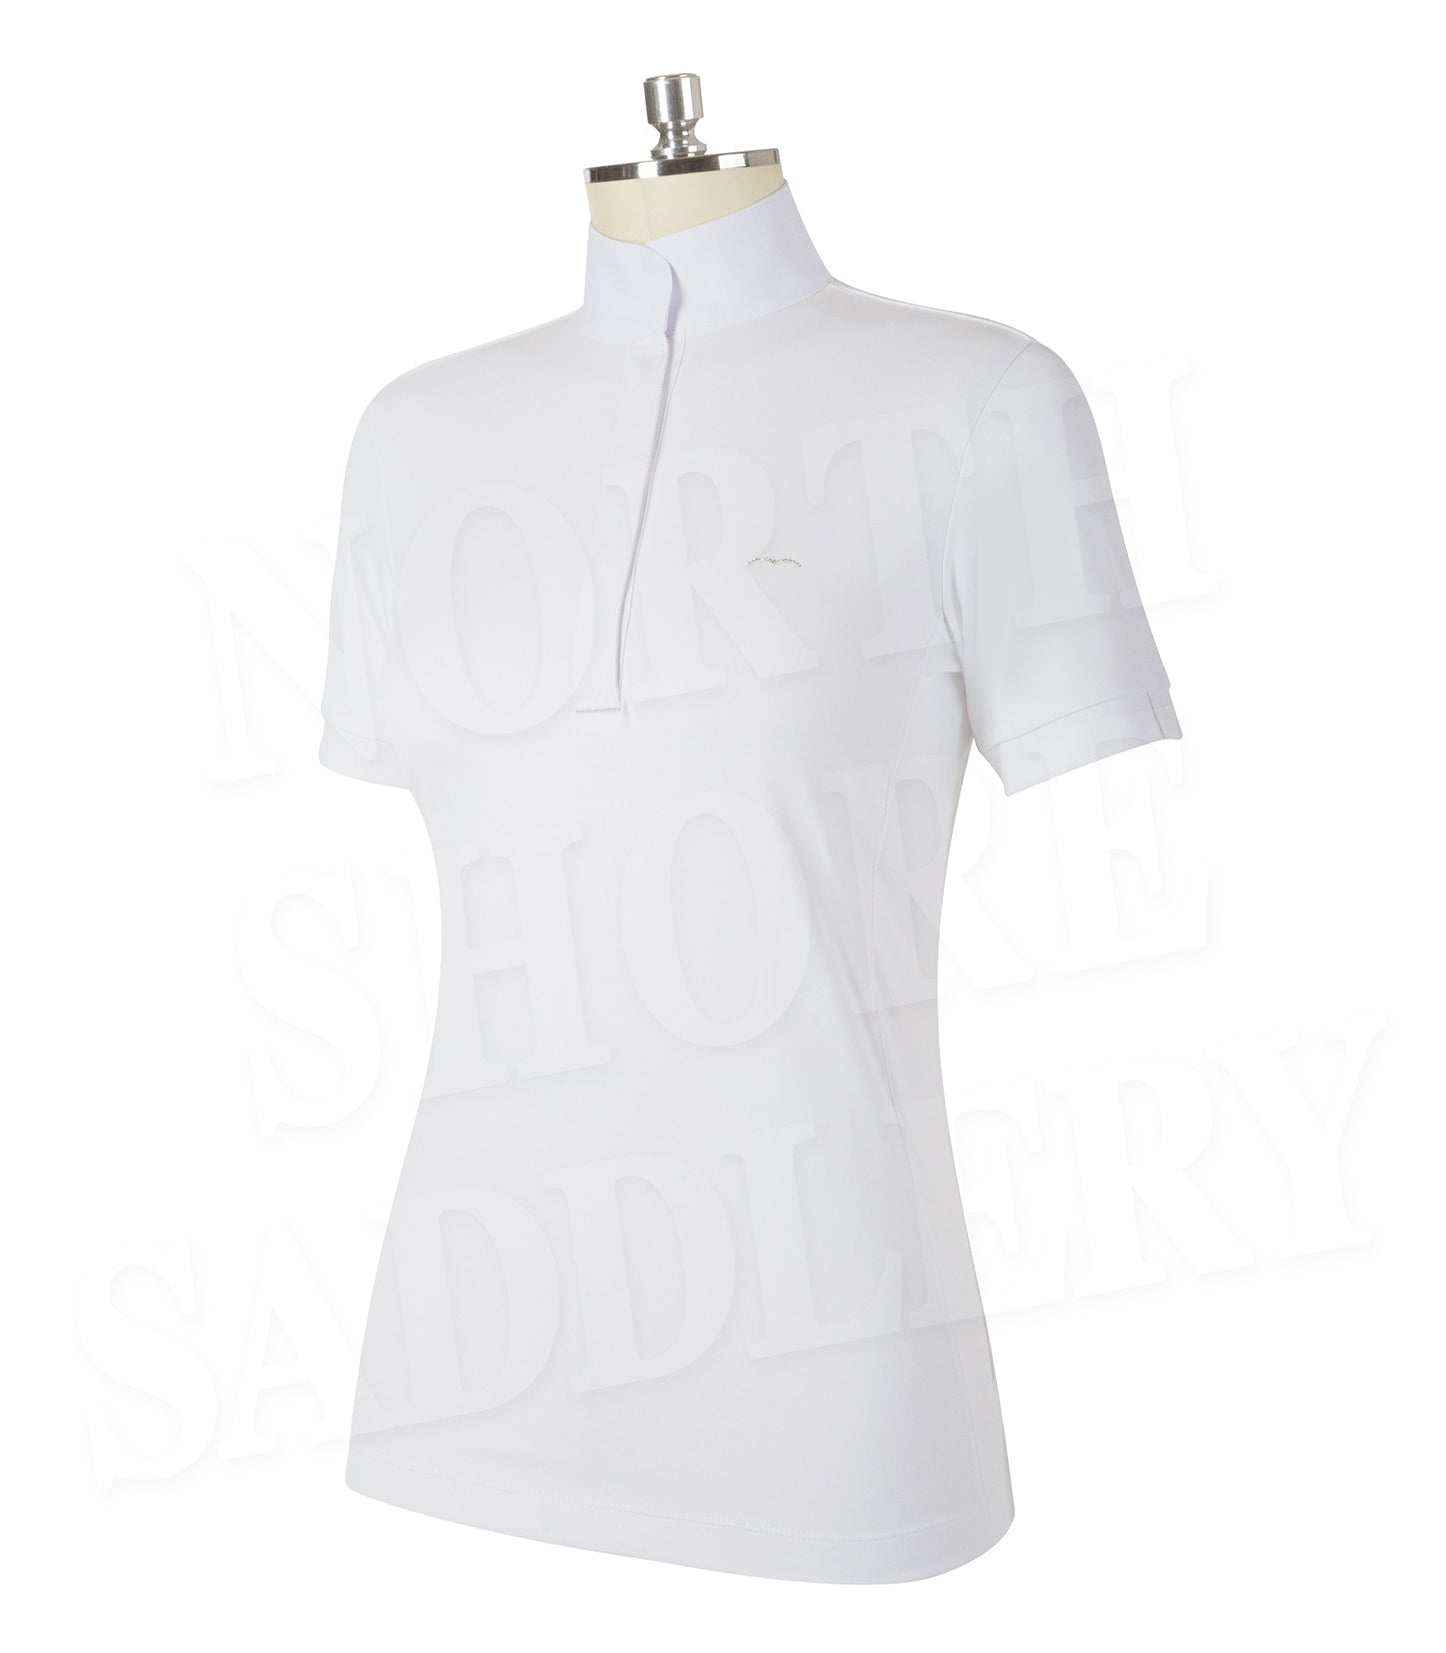 Animo Bammy Short Sleeve Competition Shirt